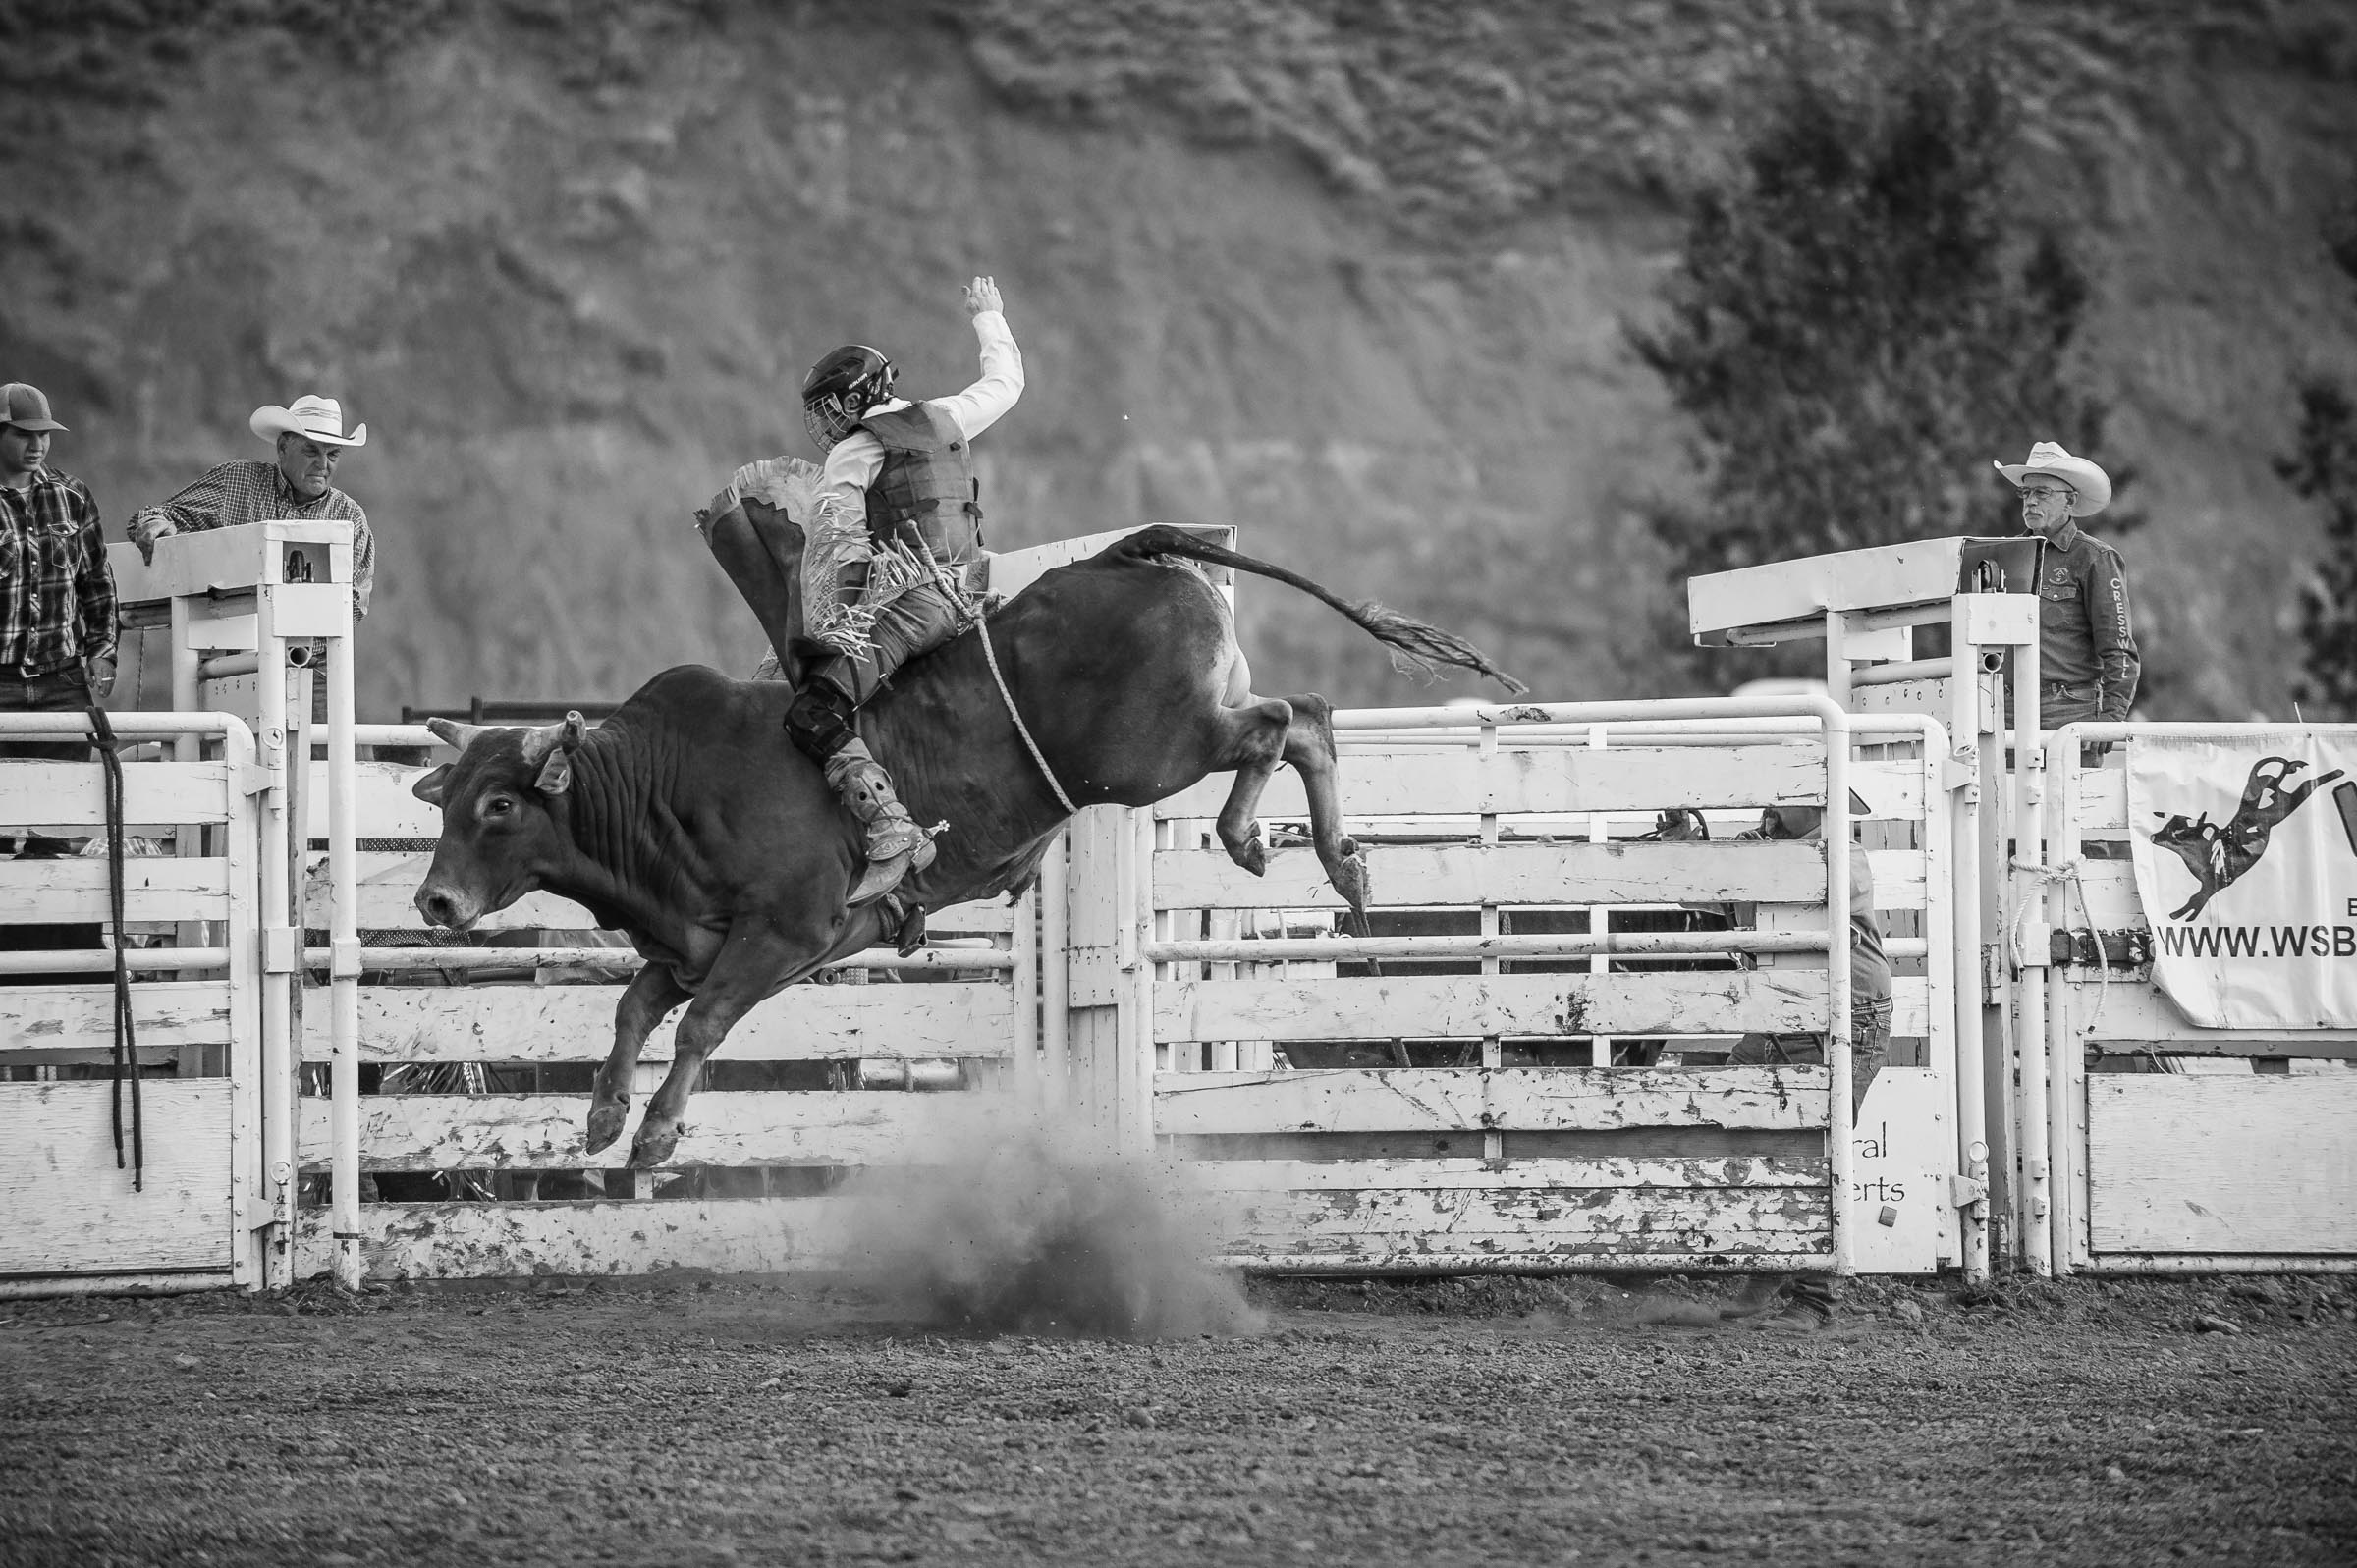 rodeo_whisky-bent_bynum-2452.JPG